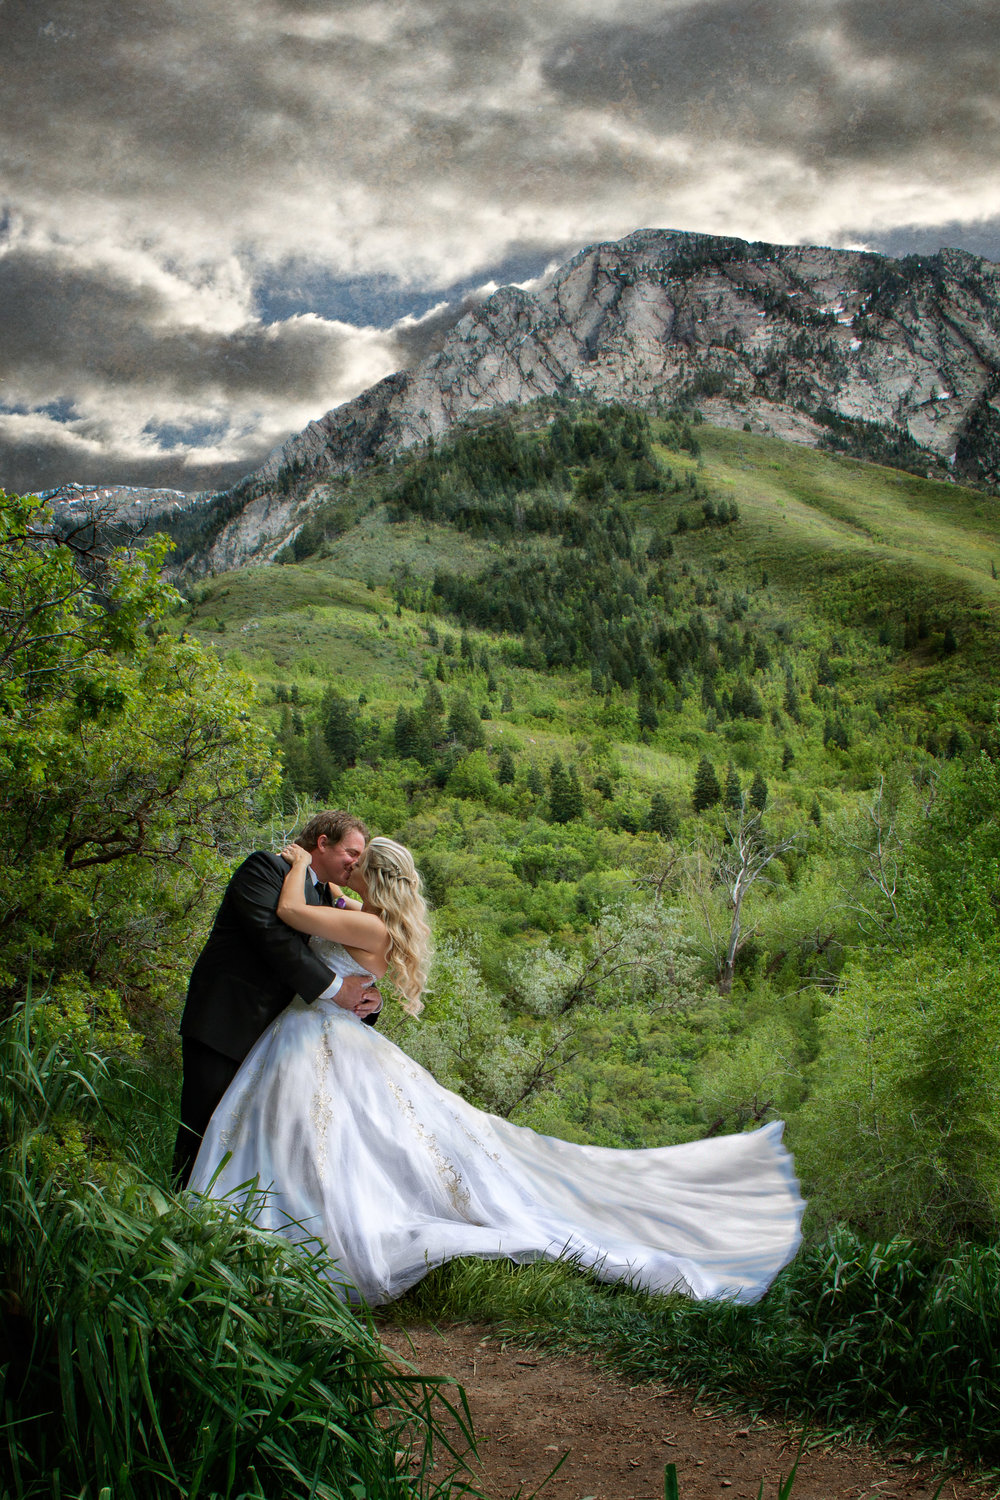 salt-lake-city-wedding-photographer.jpg